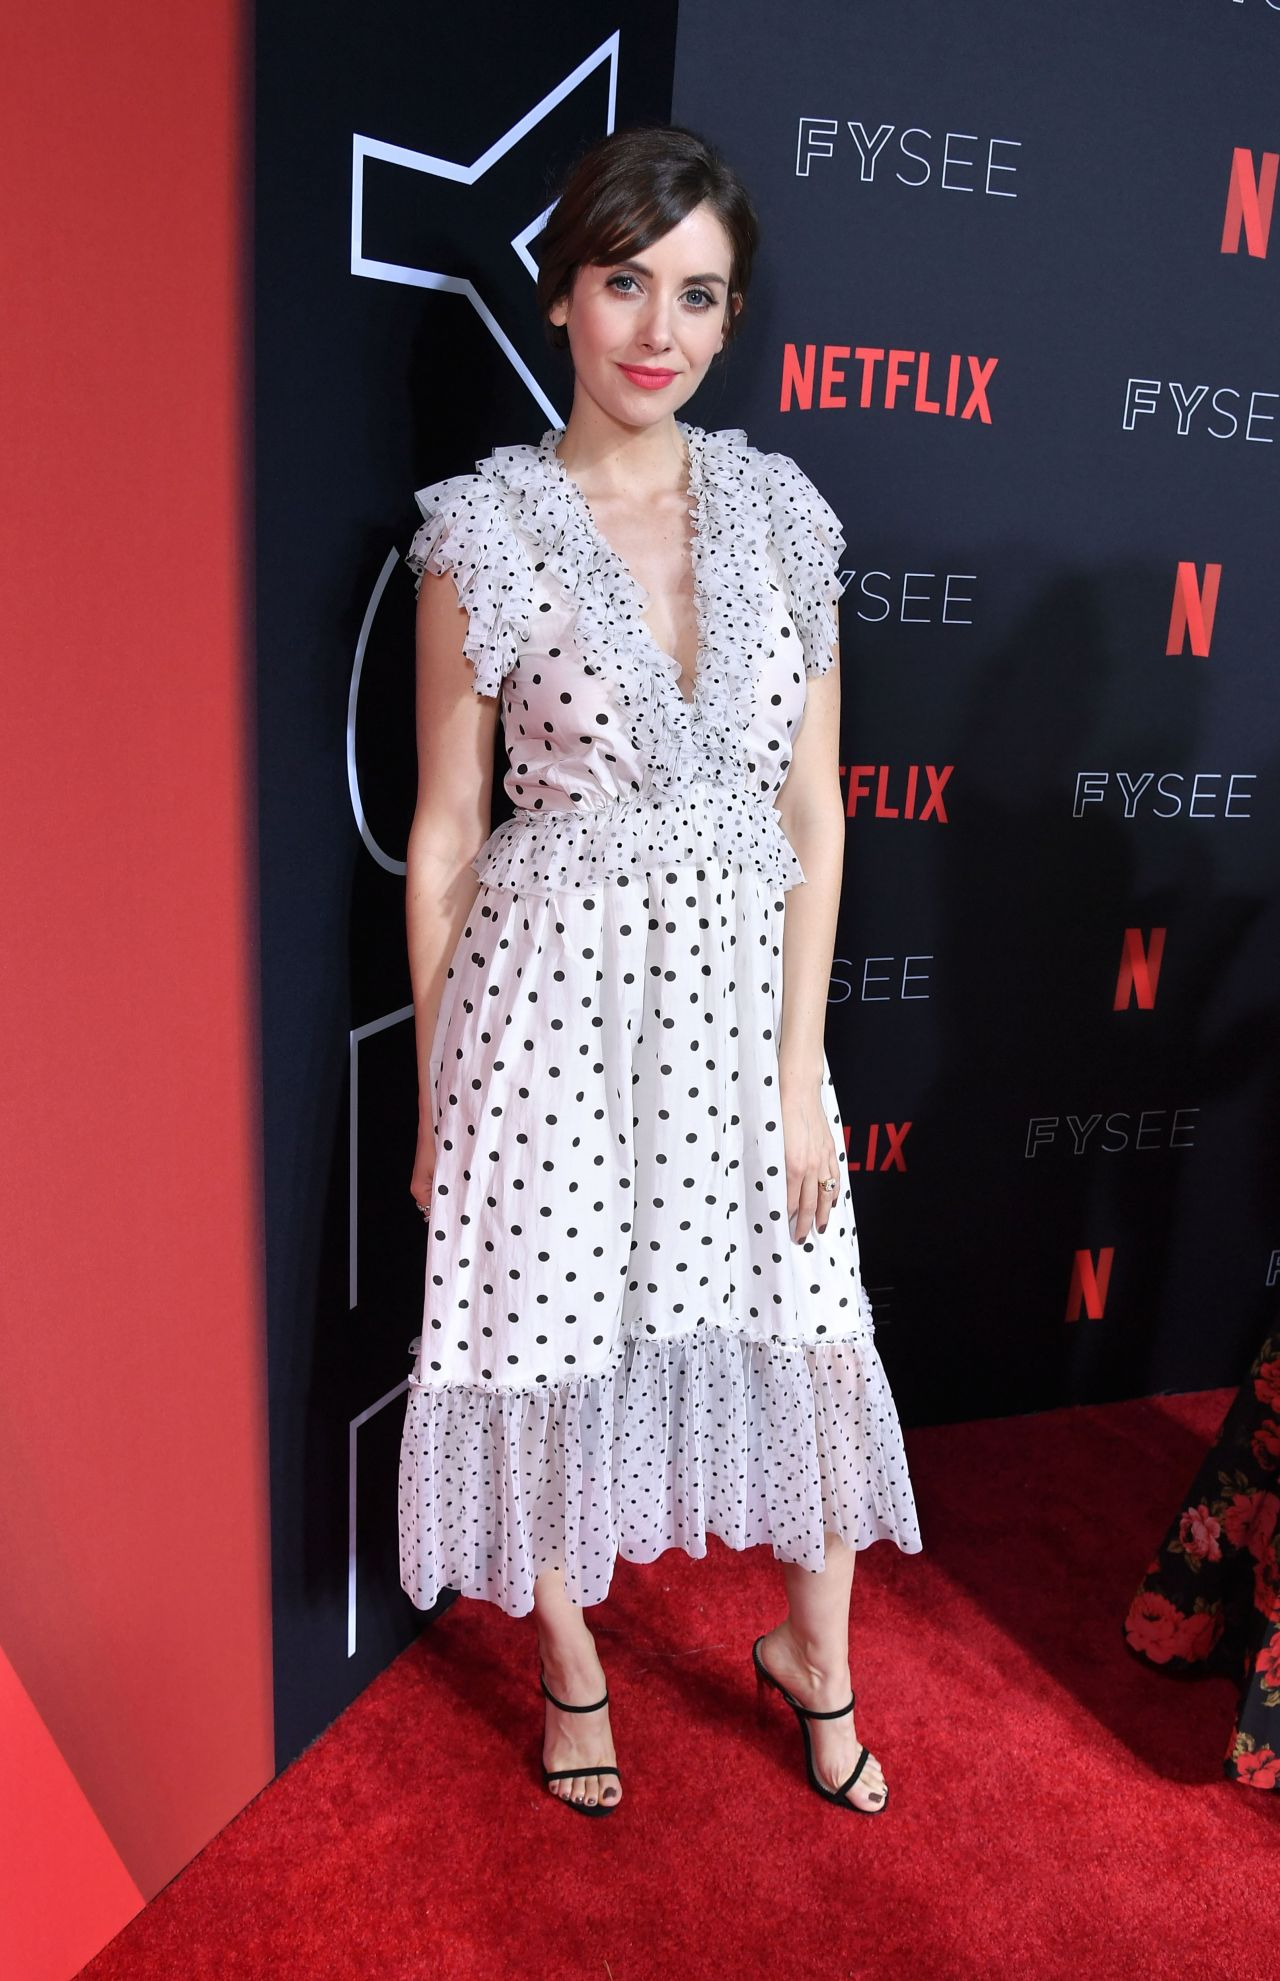 http://celebmafia.com/wp-content/uploads/2018/05/alison-brie-netflix-fysee-kick-off-event-in-los-angeles-05-06-2018-0.jpg